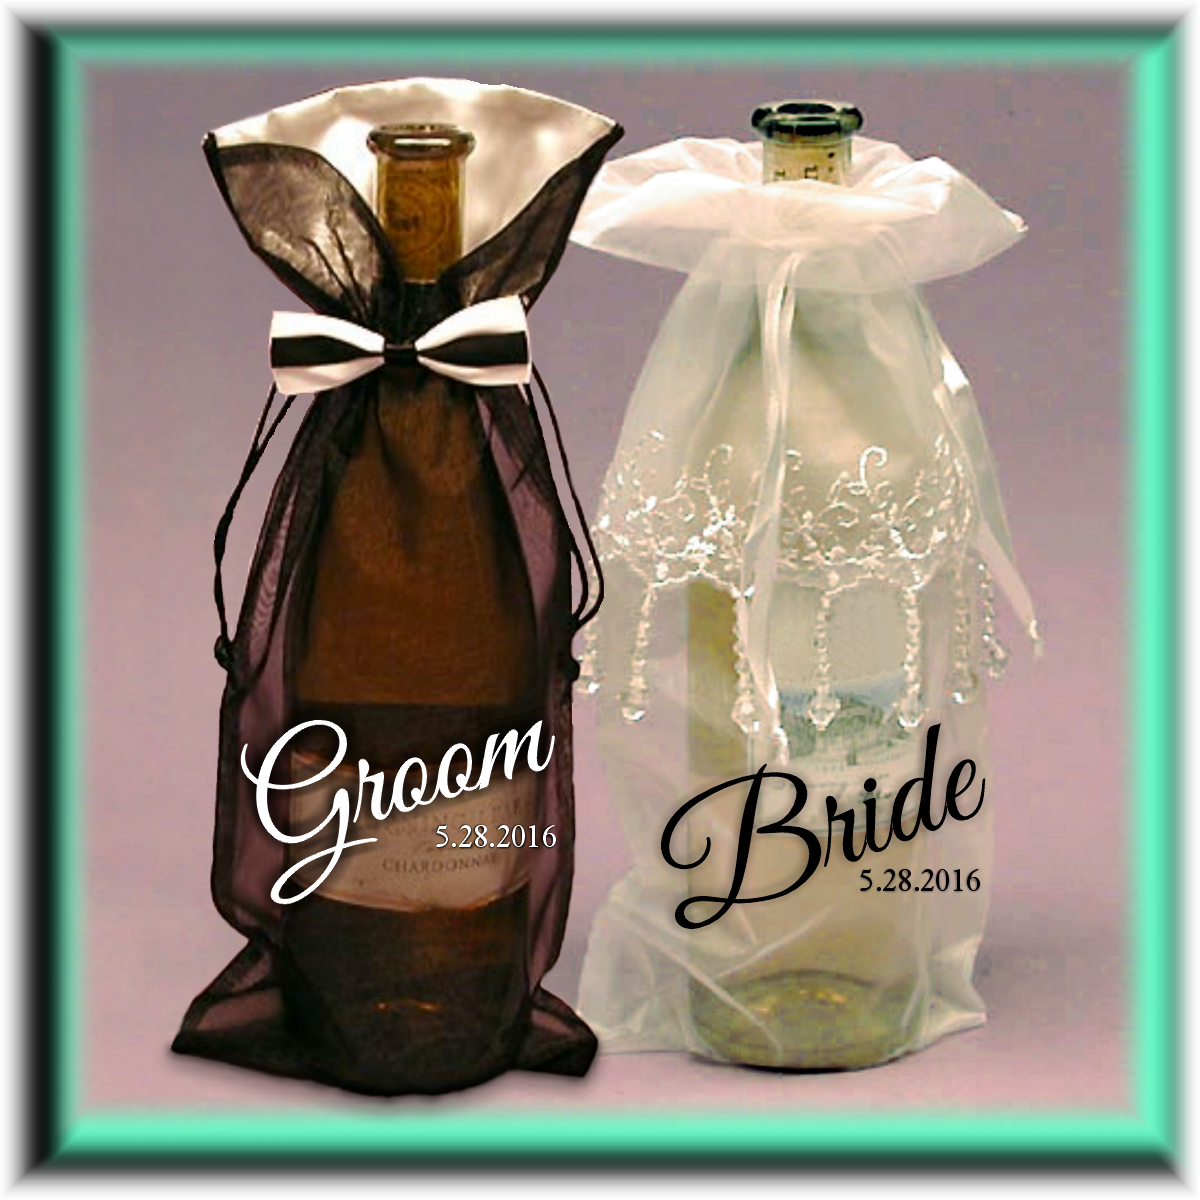 Wedding Gift Ideas Alcohol : Ideas Wedding Gift From Maid Of Honor To Bride personalized wedding ...